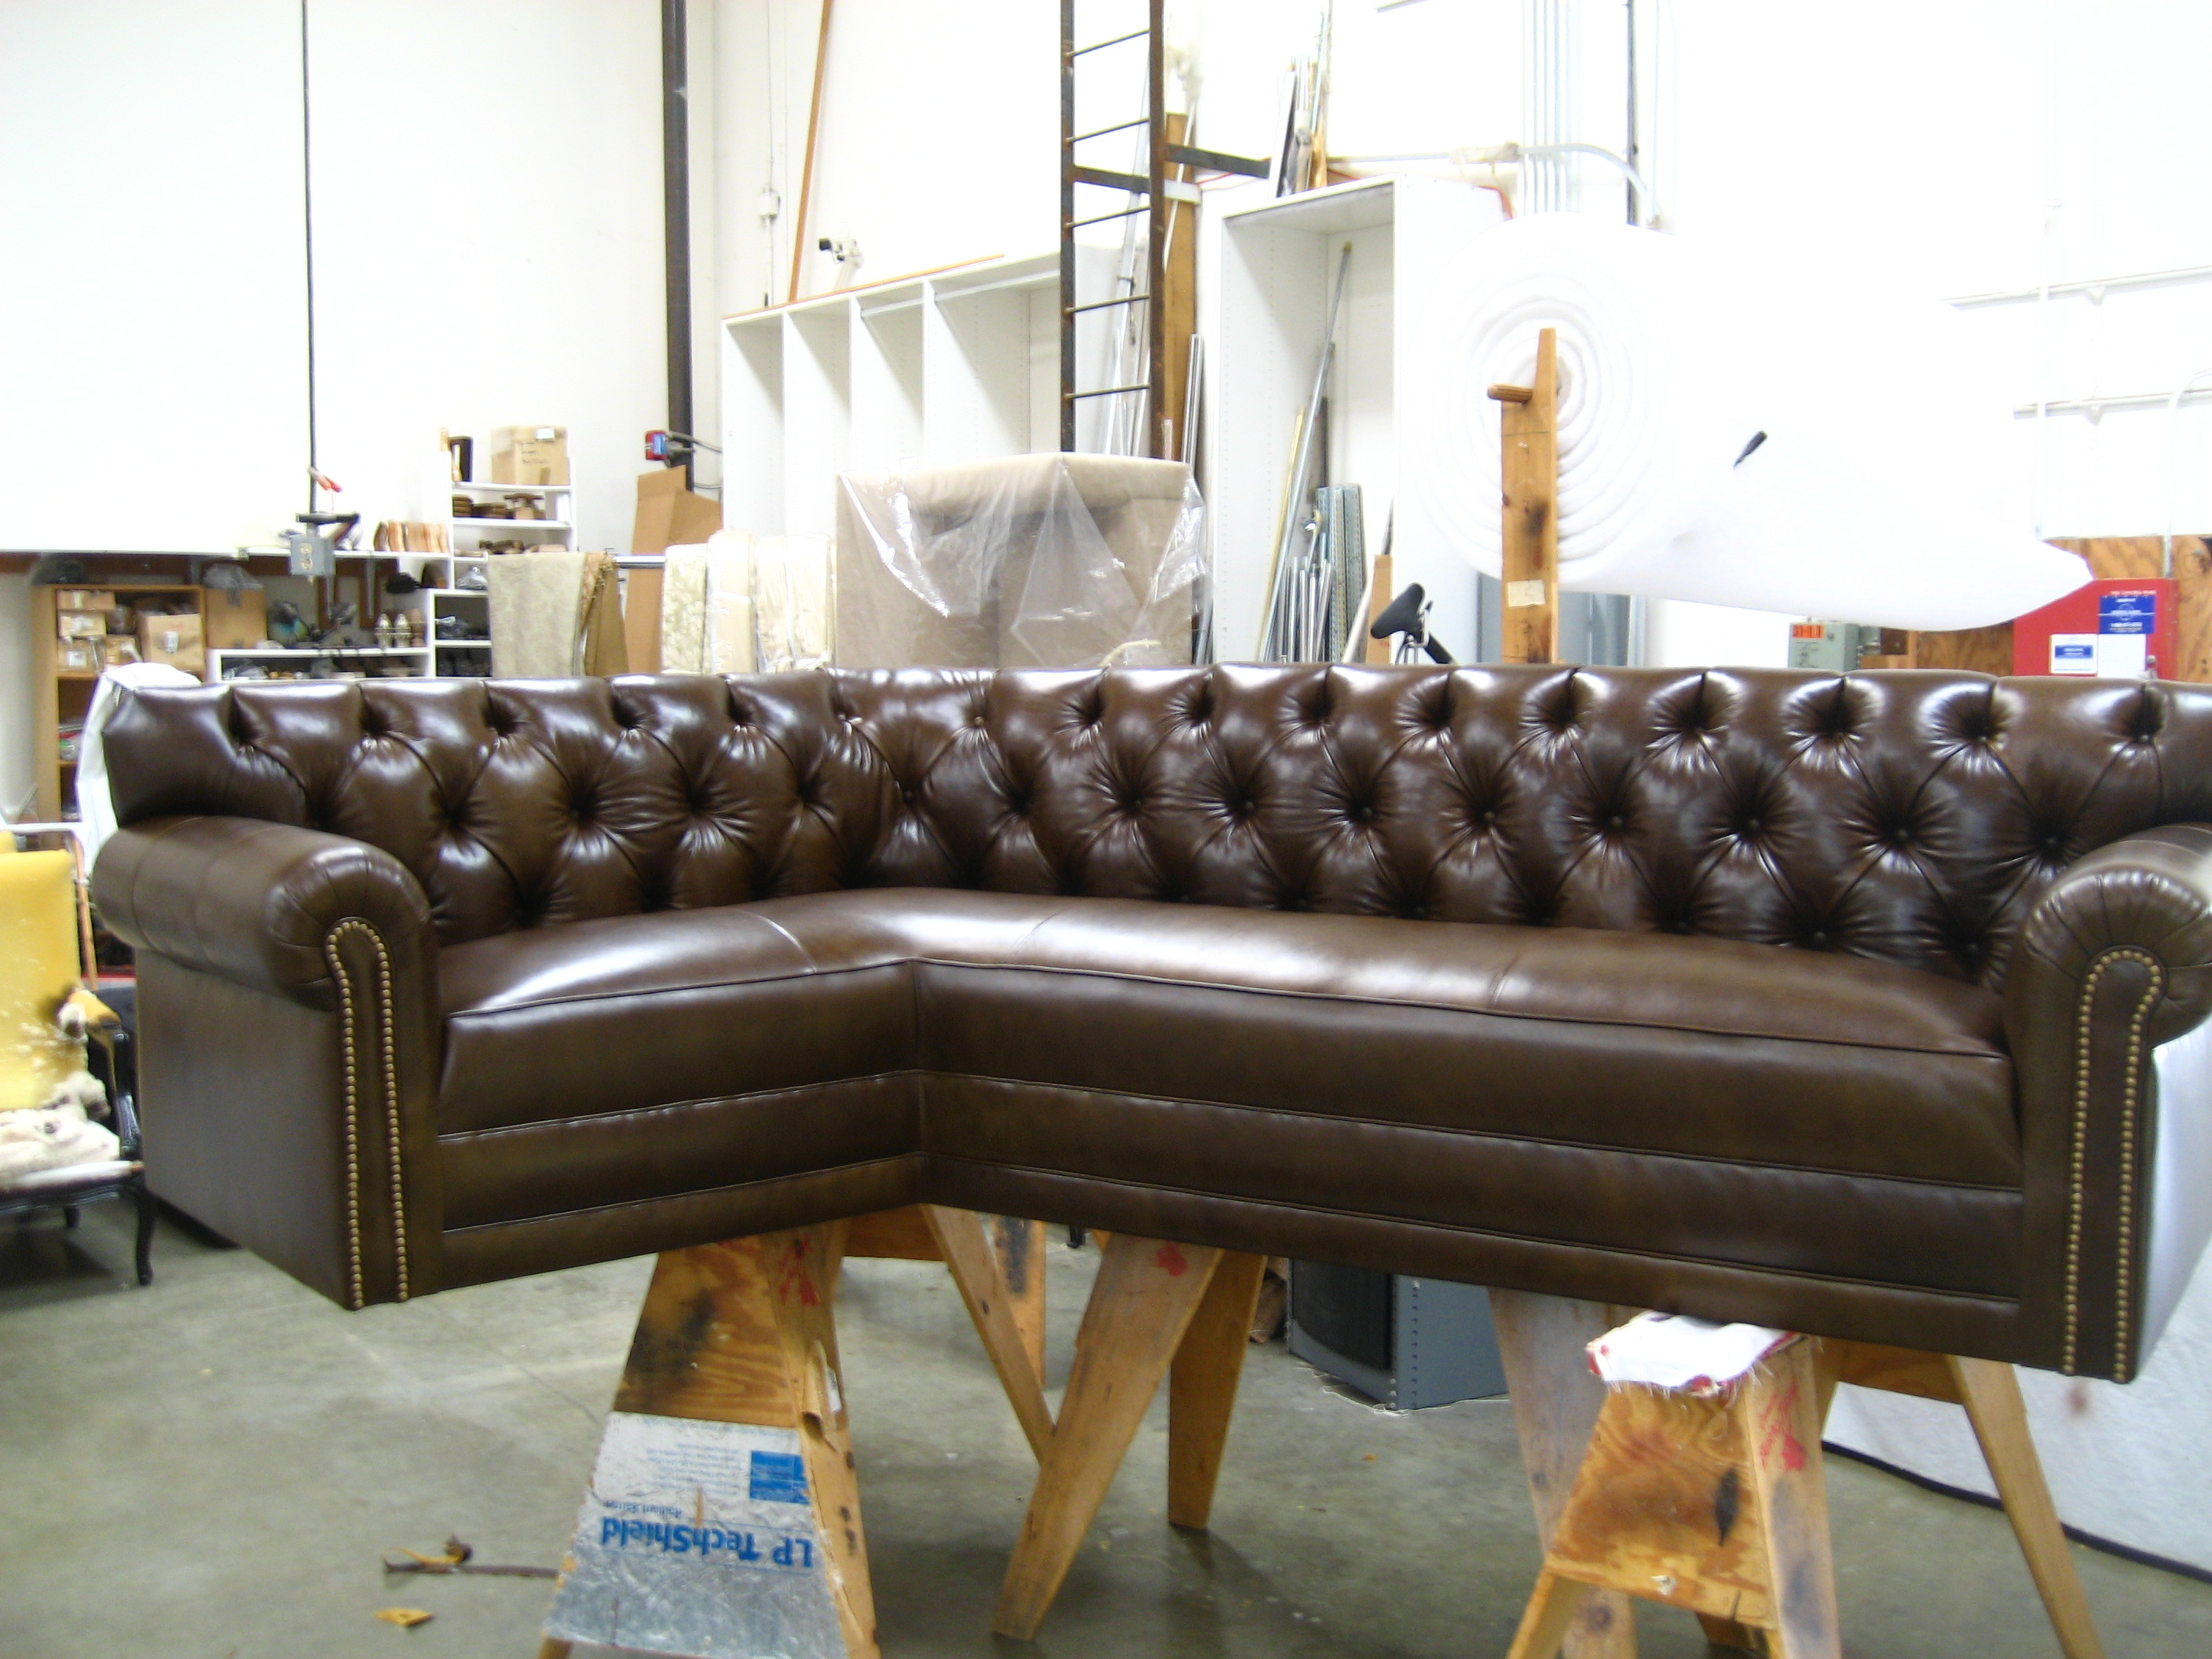 Old World Leather Furniture With Nail Head Detail Designed And Made Here At Jcw